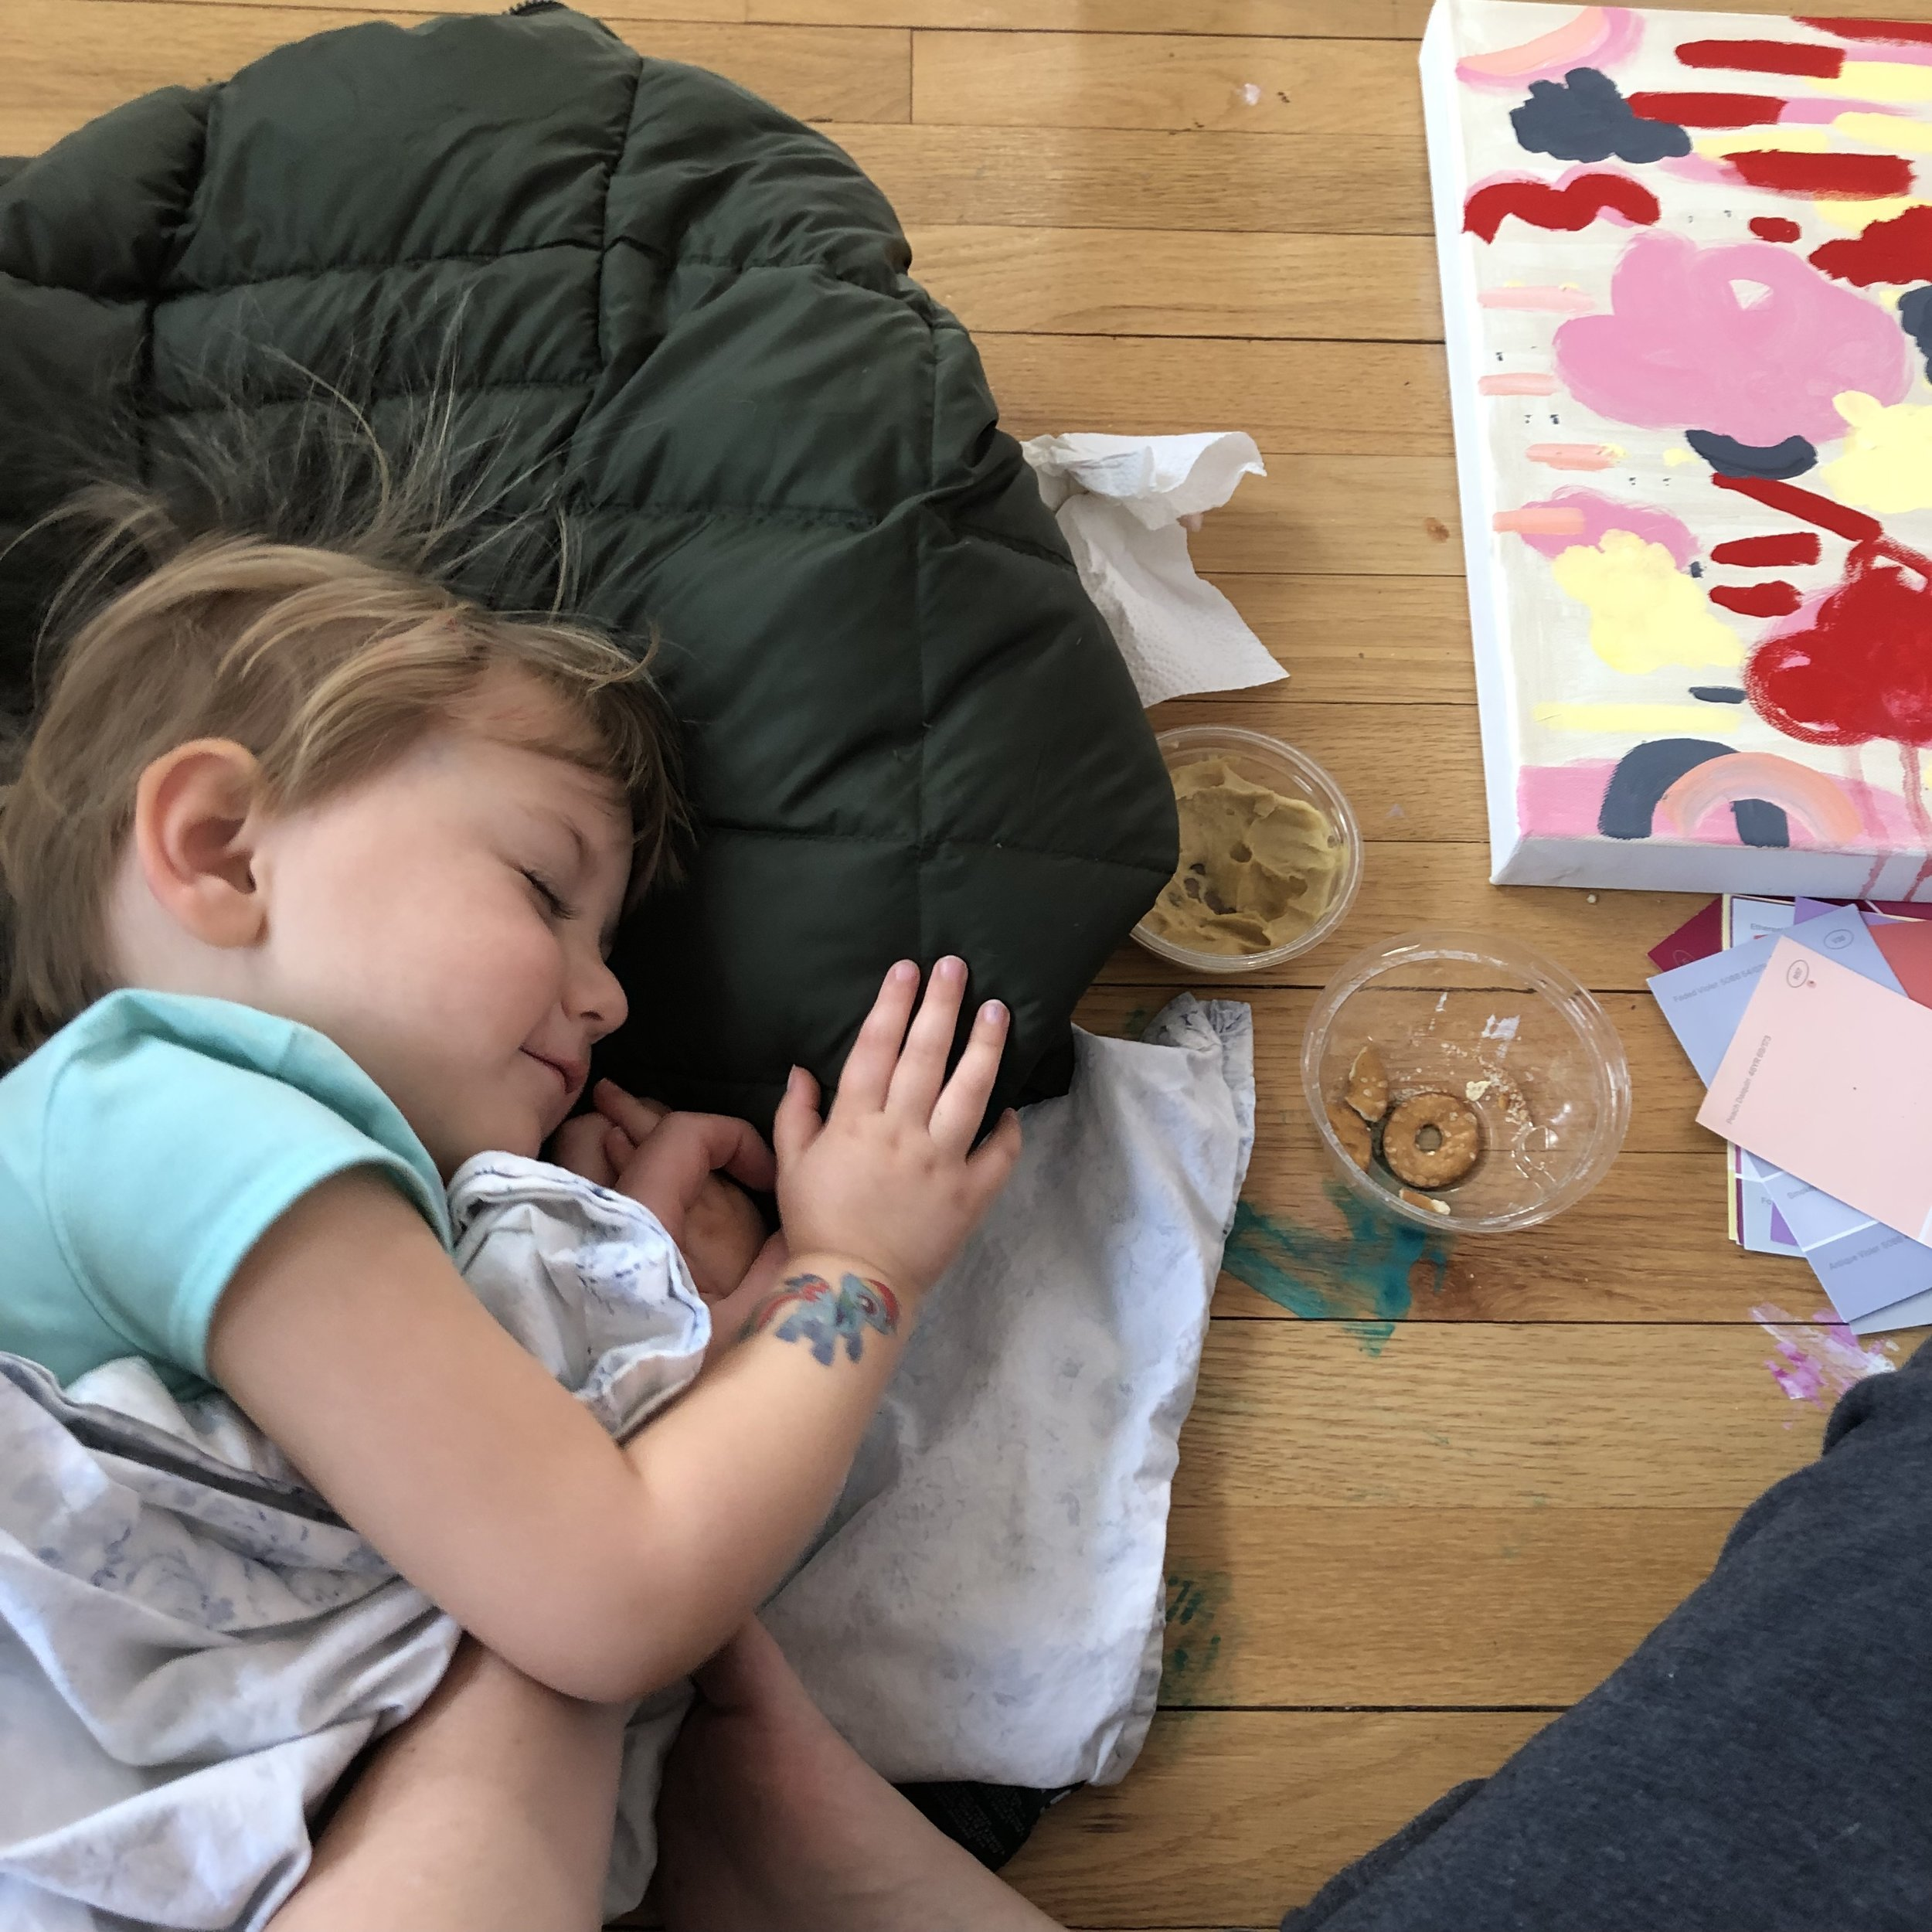 my Daughter, Cayce taking a nap in my studio while I paint